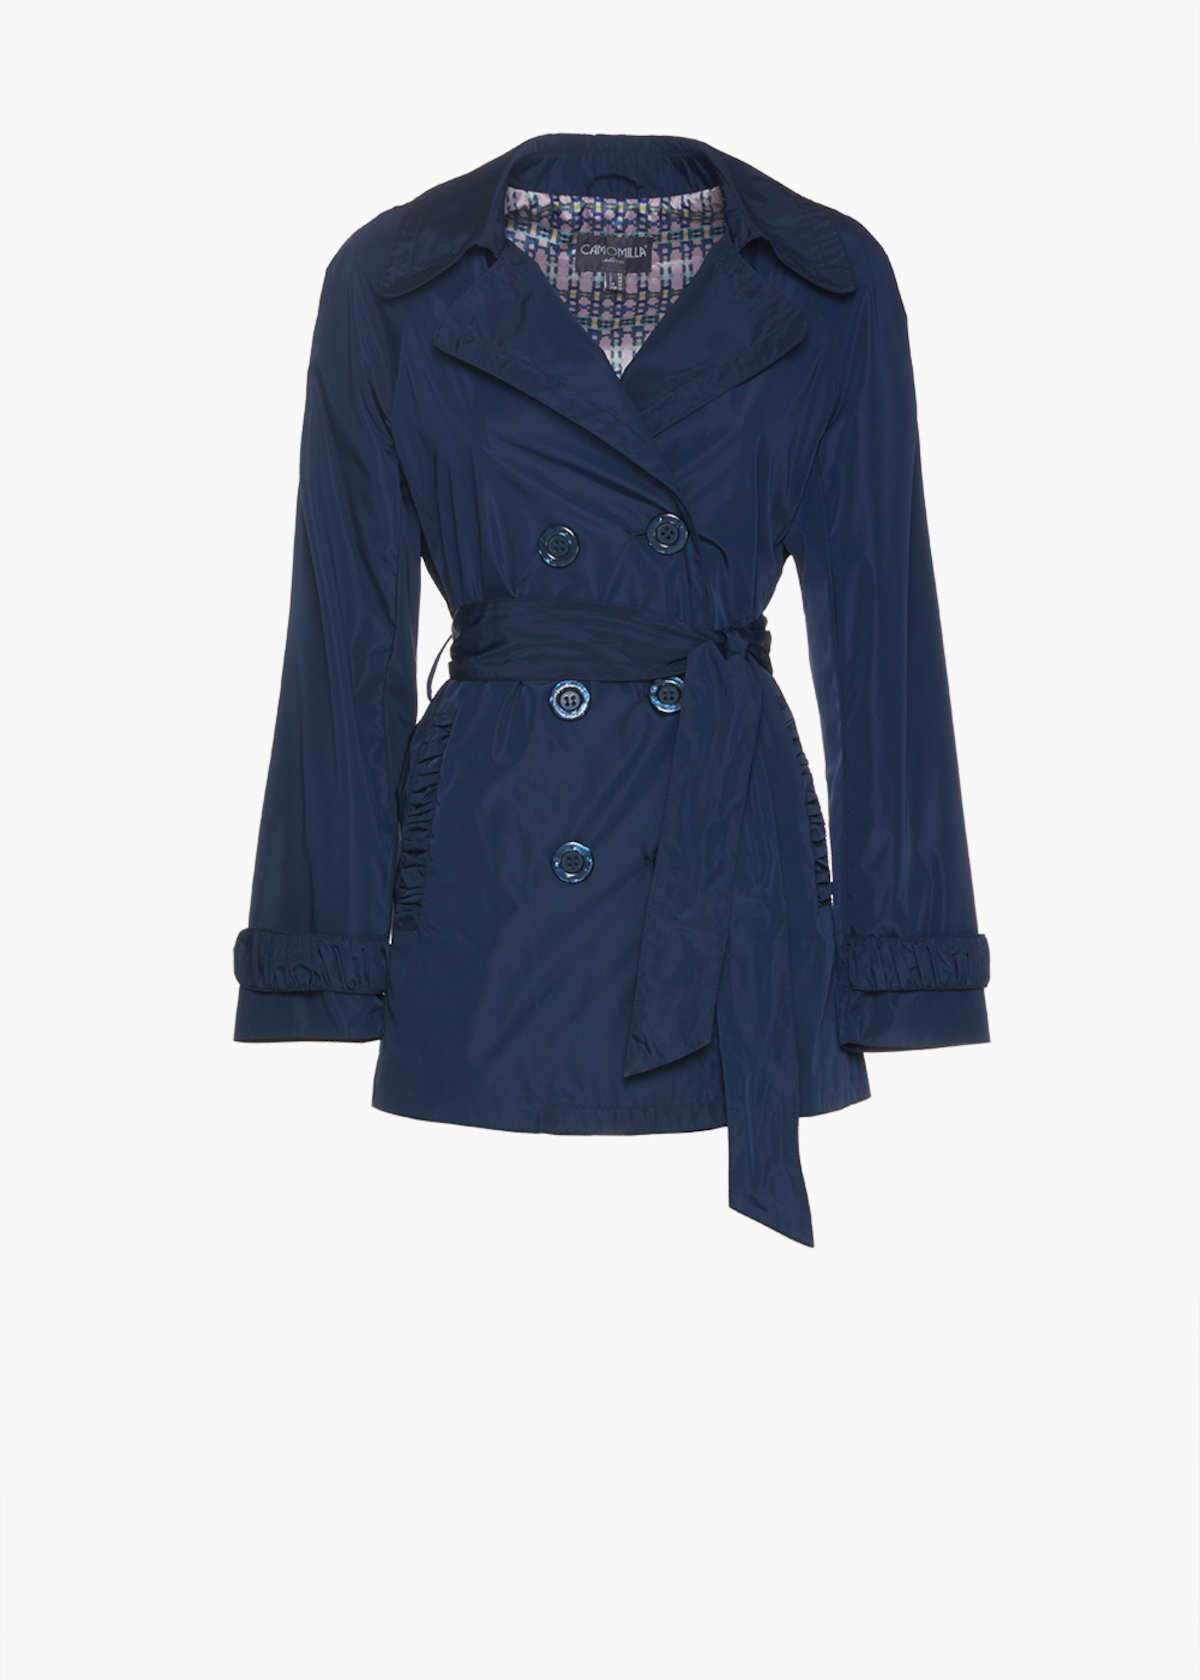 Double-breasted trench coat Teo with buttons and belt - Medium Blue - Woman - Category image